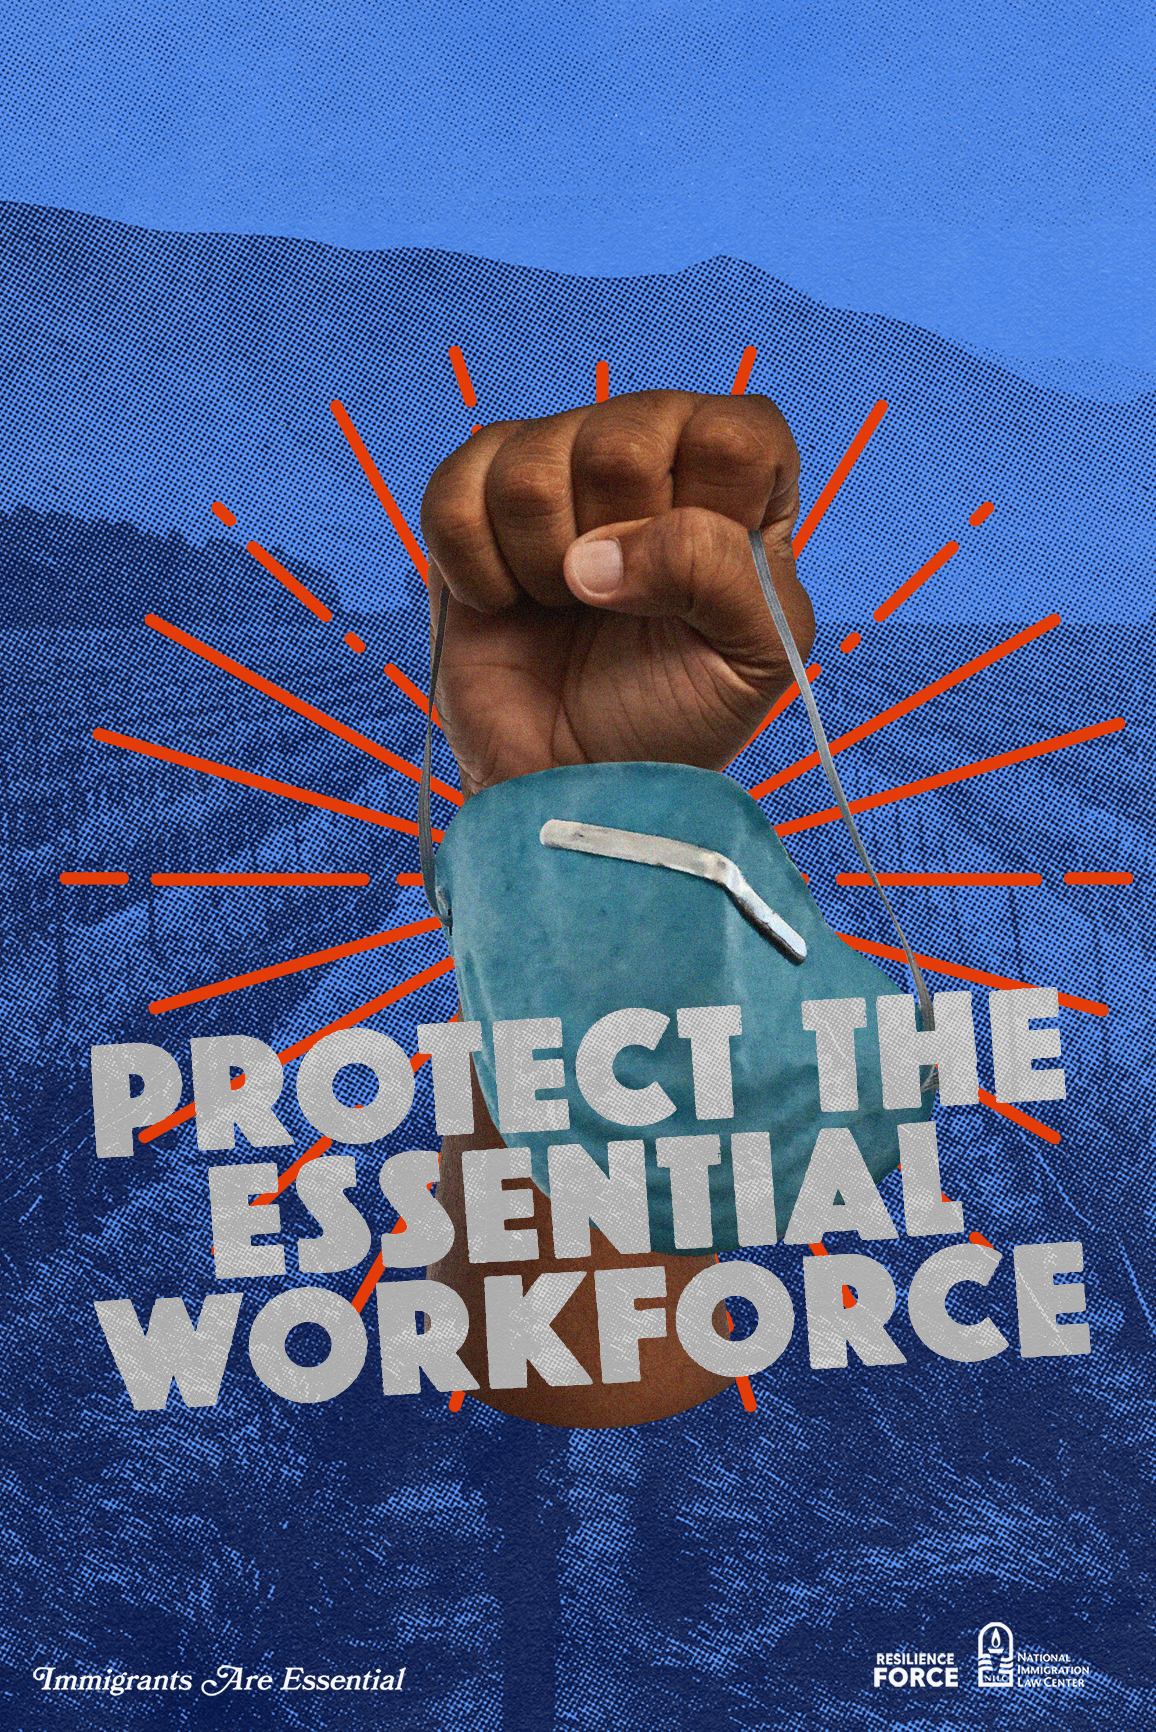 Protect the Essential Workforce